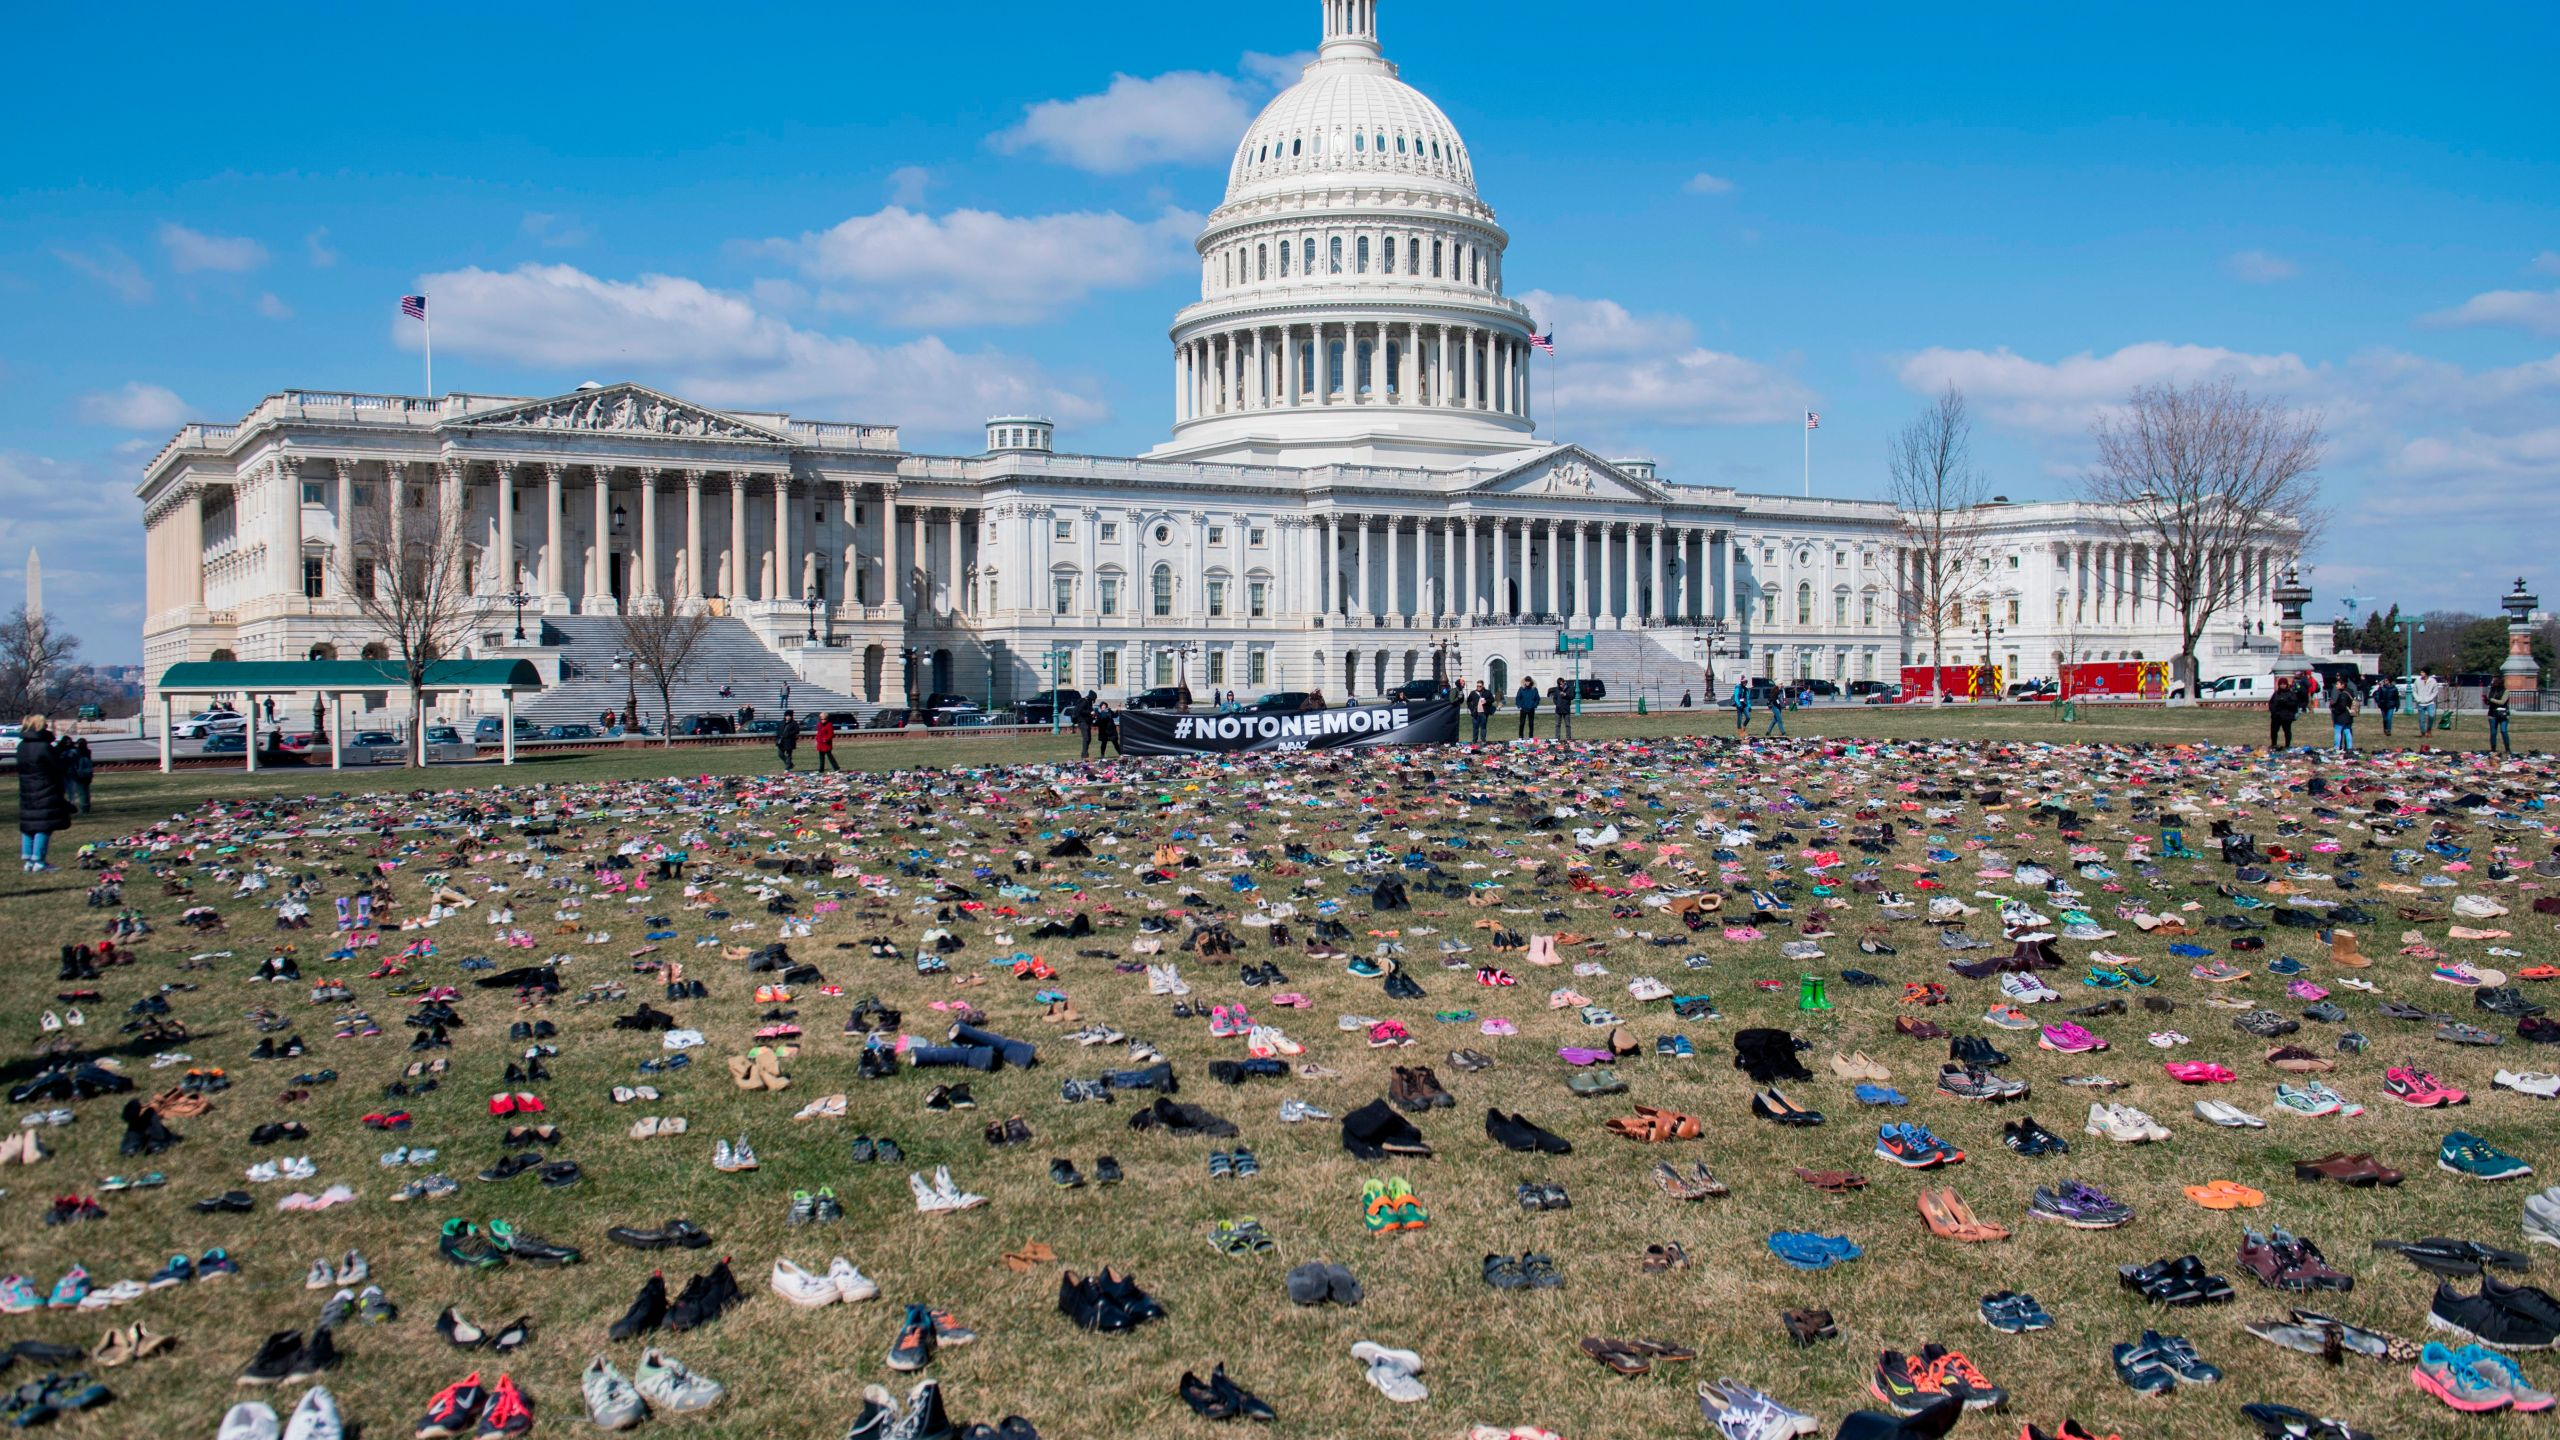 The lawn outside the U.S. Capitol is covered with 7,000 pairs of empty shoes to memorialize children killed by gun violence since the Sandy Hook school shooting on March 13, 2018. (Credit: Saul Loeb/AFP via Getty Images)